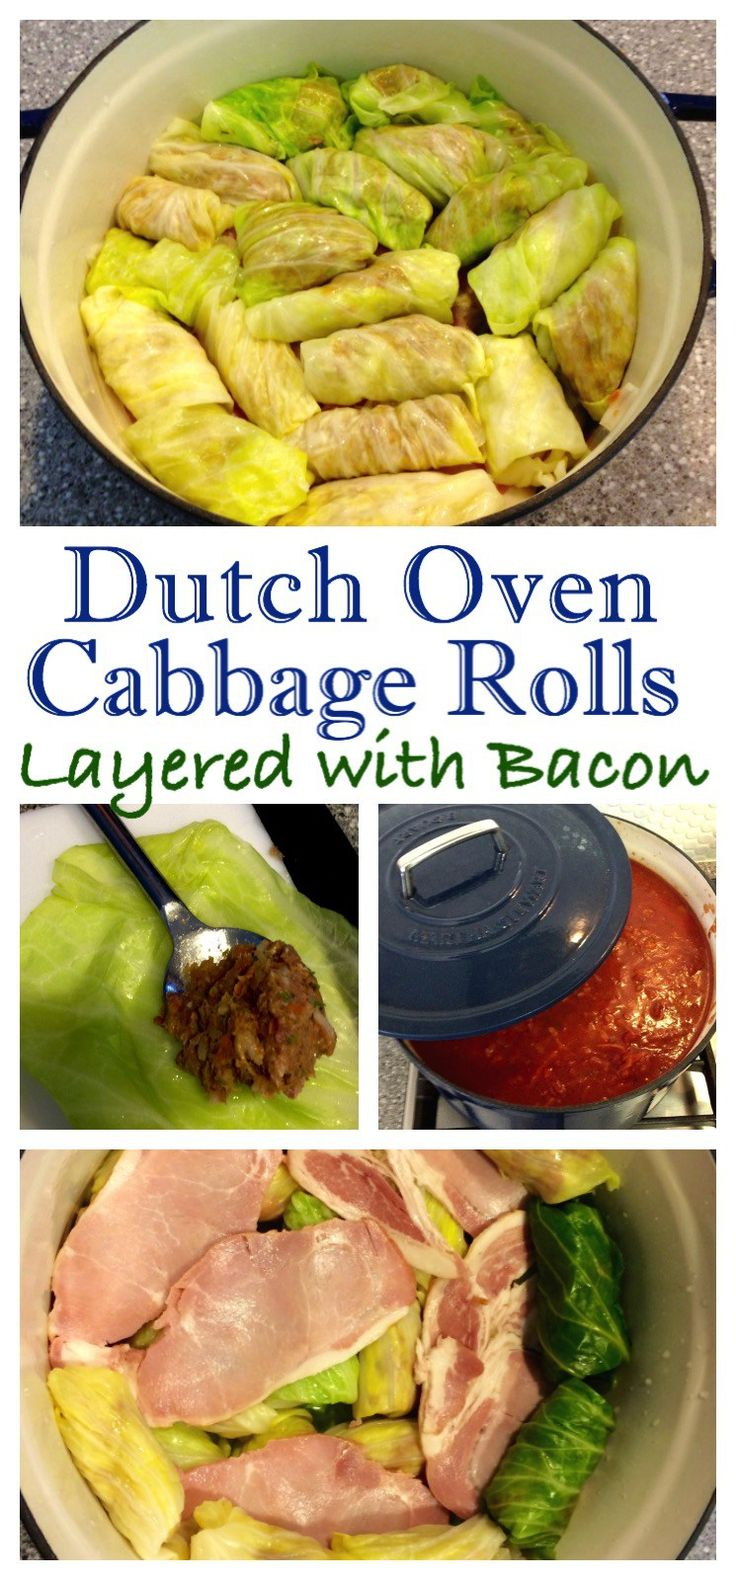 how to cook cabbage rolls in oven